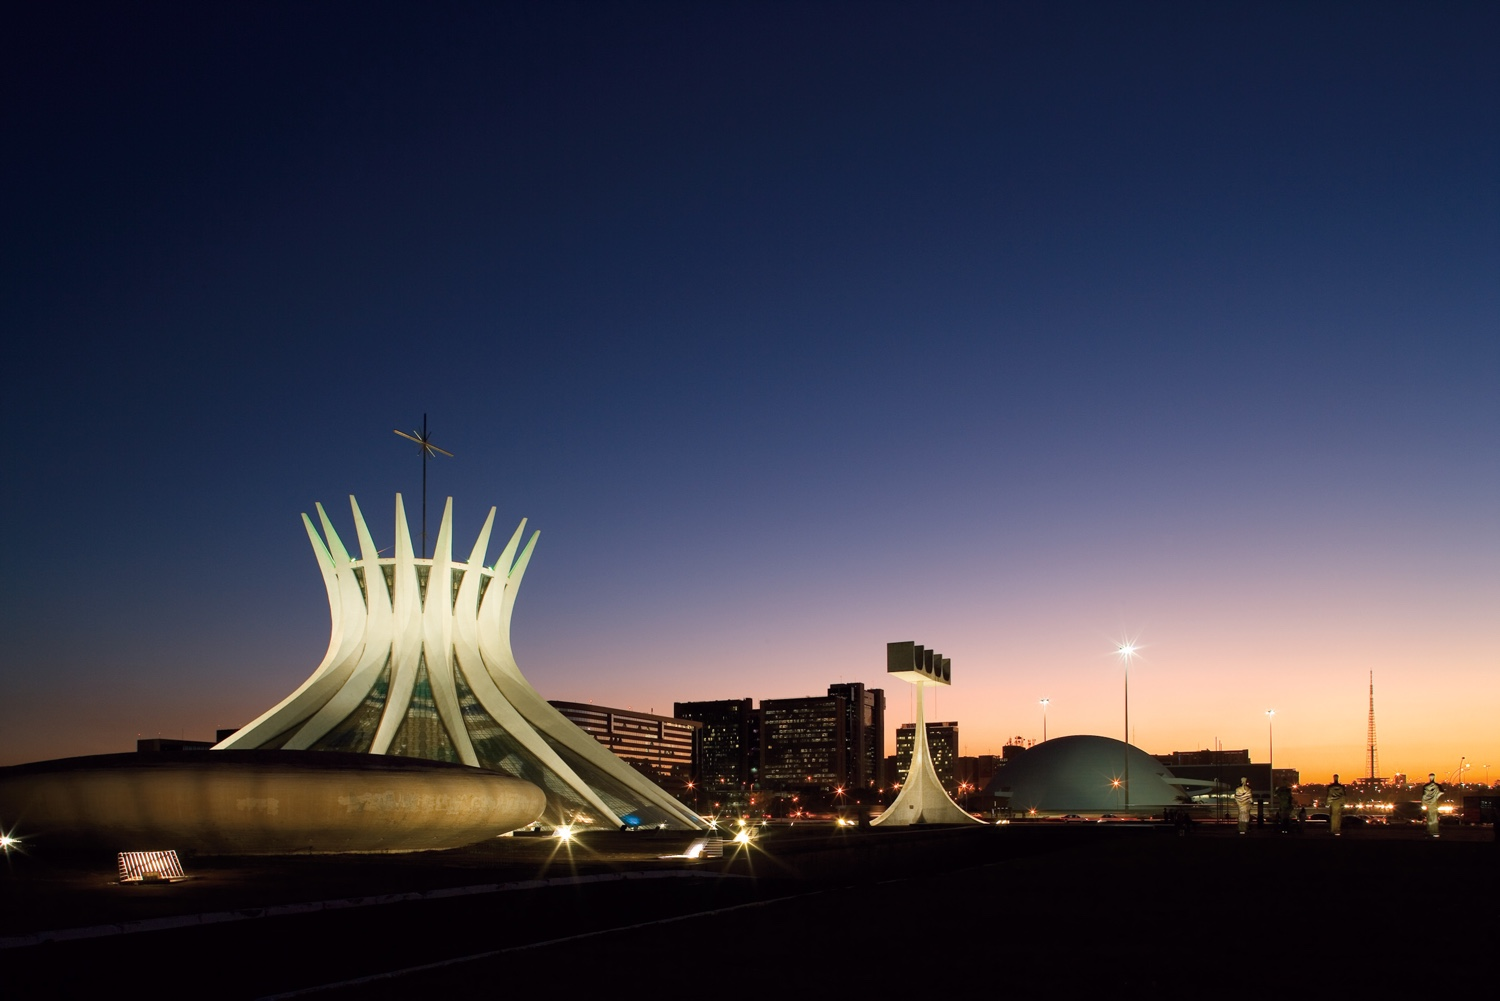 Catedral de Brasília. Photo ©Embratur via Brazilian Government website on the 2014 World Cup.